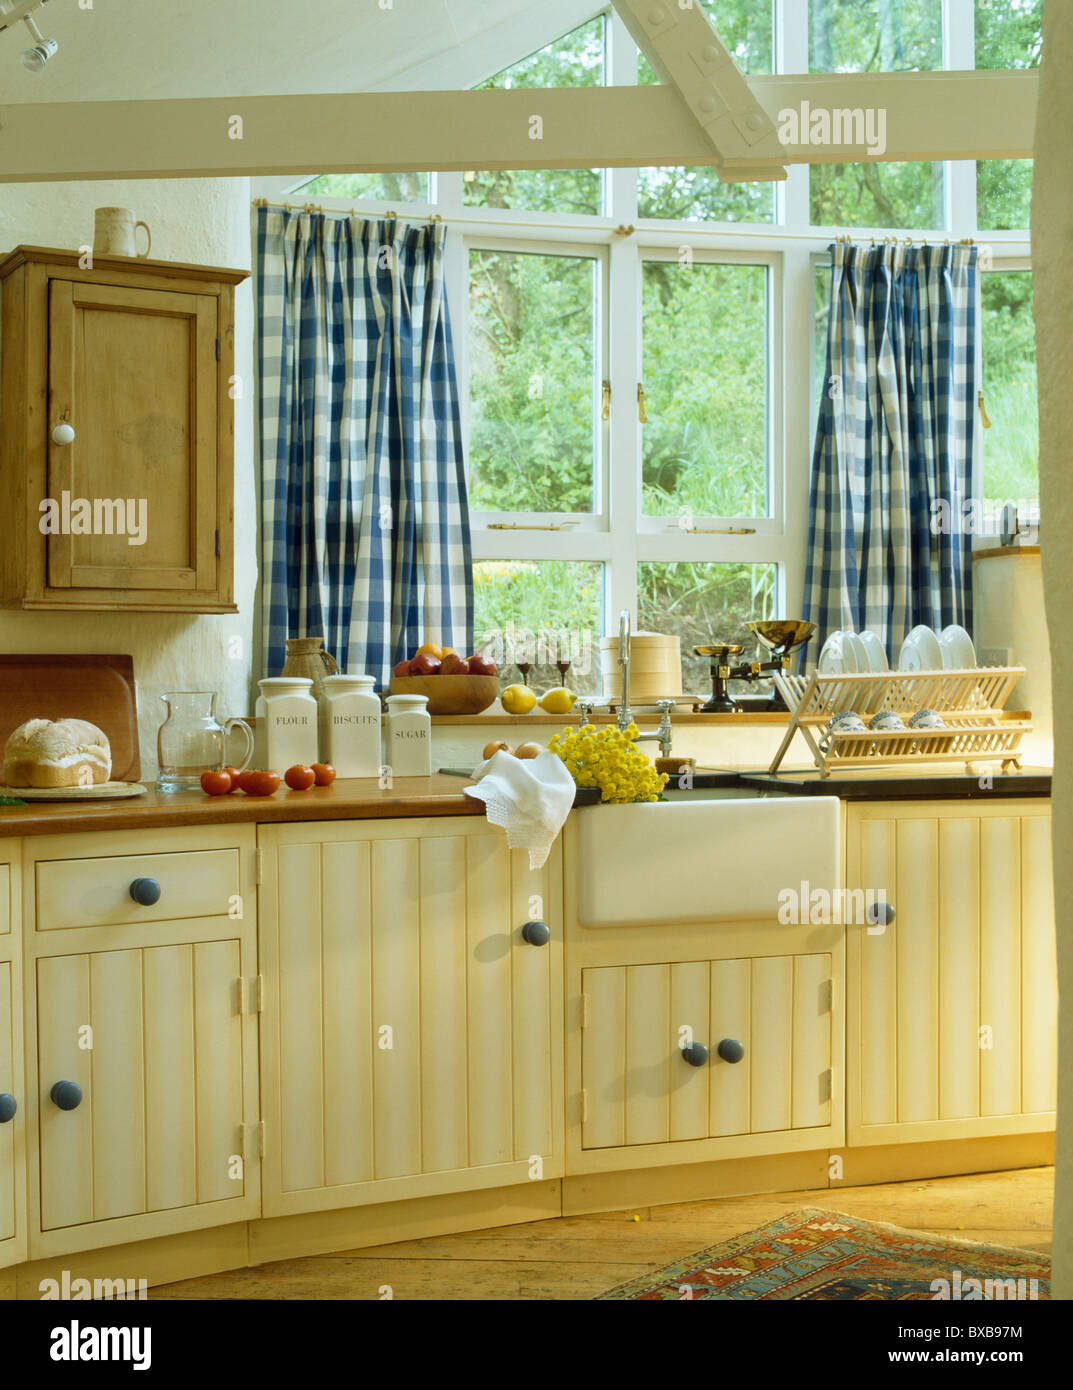 Curtains For Kitchen Window Above Sink Part - 24: Blue+white Checked Curtains On Window Above Sink In Cottage Kitchen  Extension With Pale Yellow Fitted Units